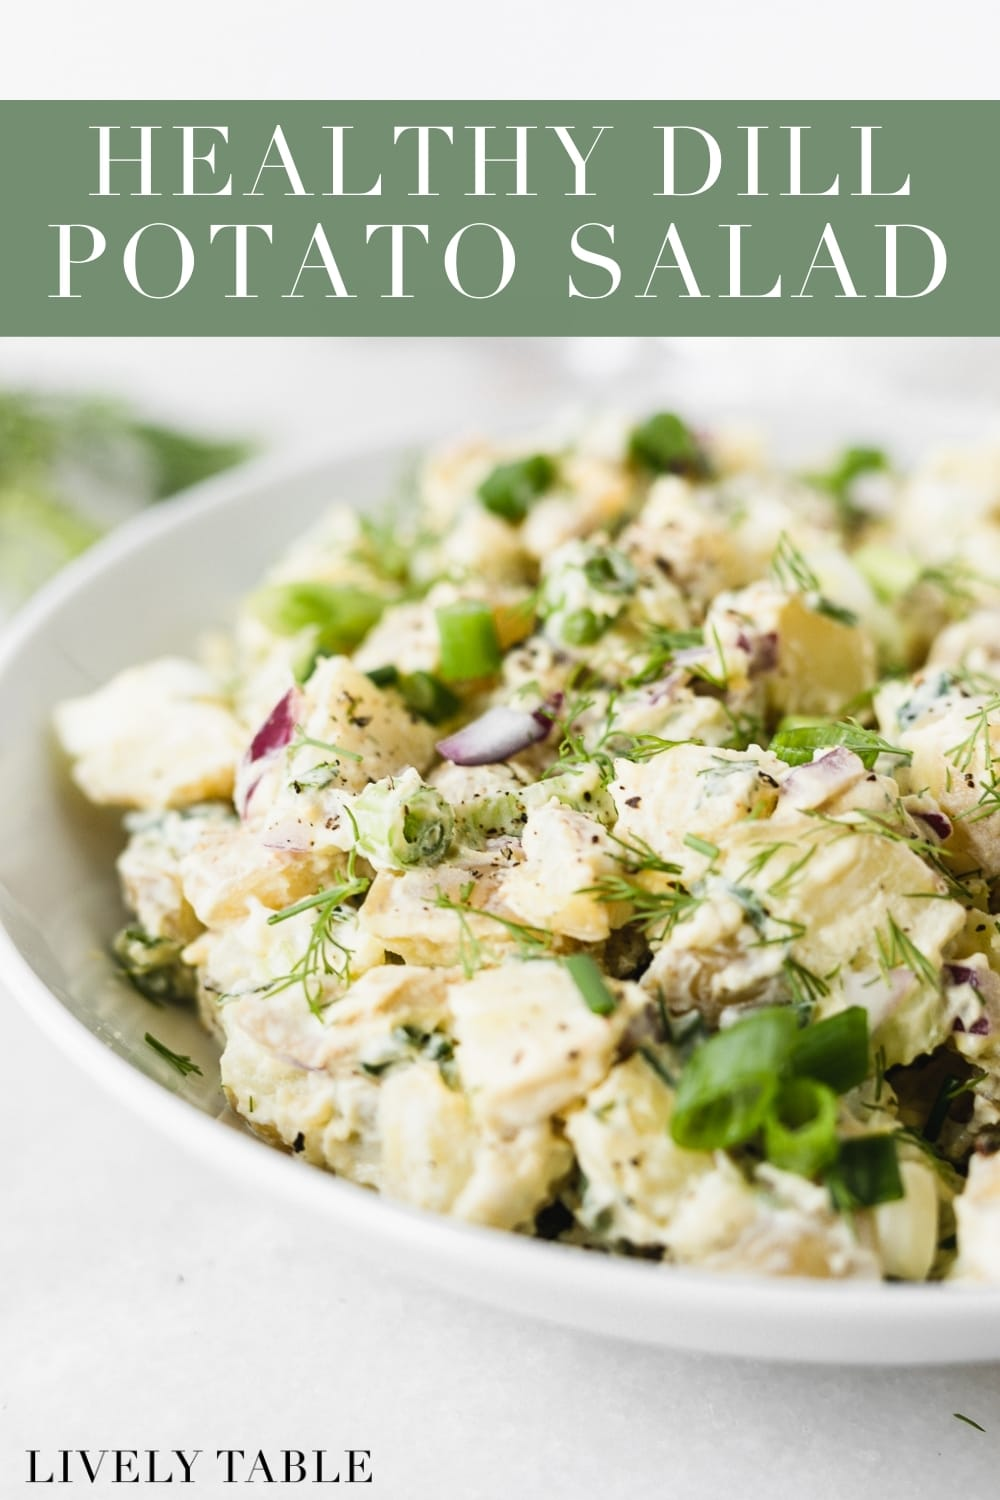 Healthy Dill Potato Salad is the perfect summer side dish to accompany burgers, barbecue, or any summer meal! It's great for everything from barbecues to tailgating! #glutenfree #nutfree #mayofree #potatosalad #bbqsides #summerrecipes #healthyrecipes #easyrecipes #dillrecipes #healthysides